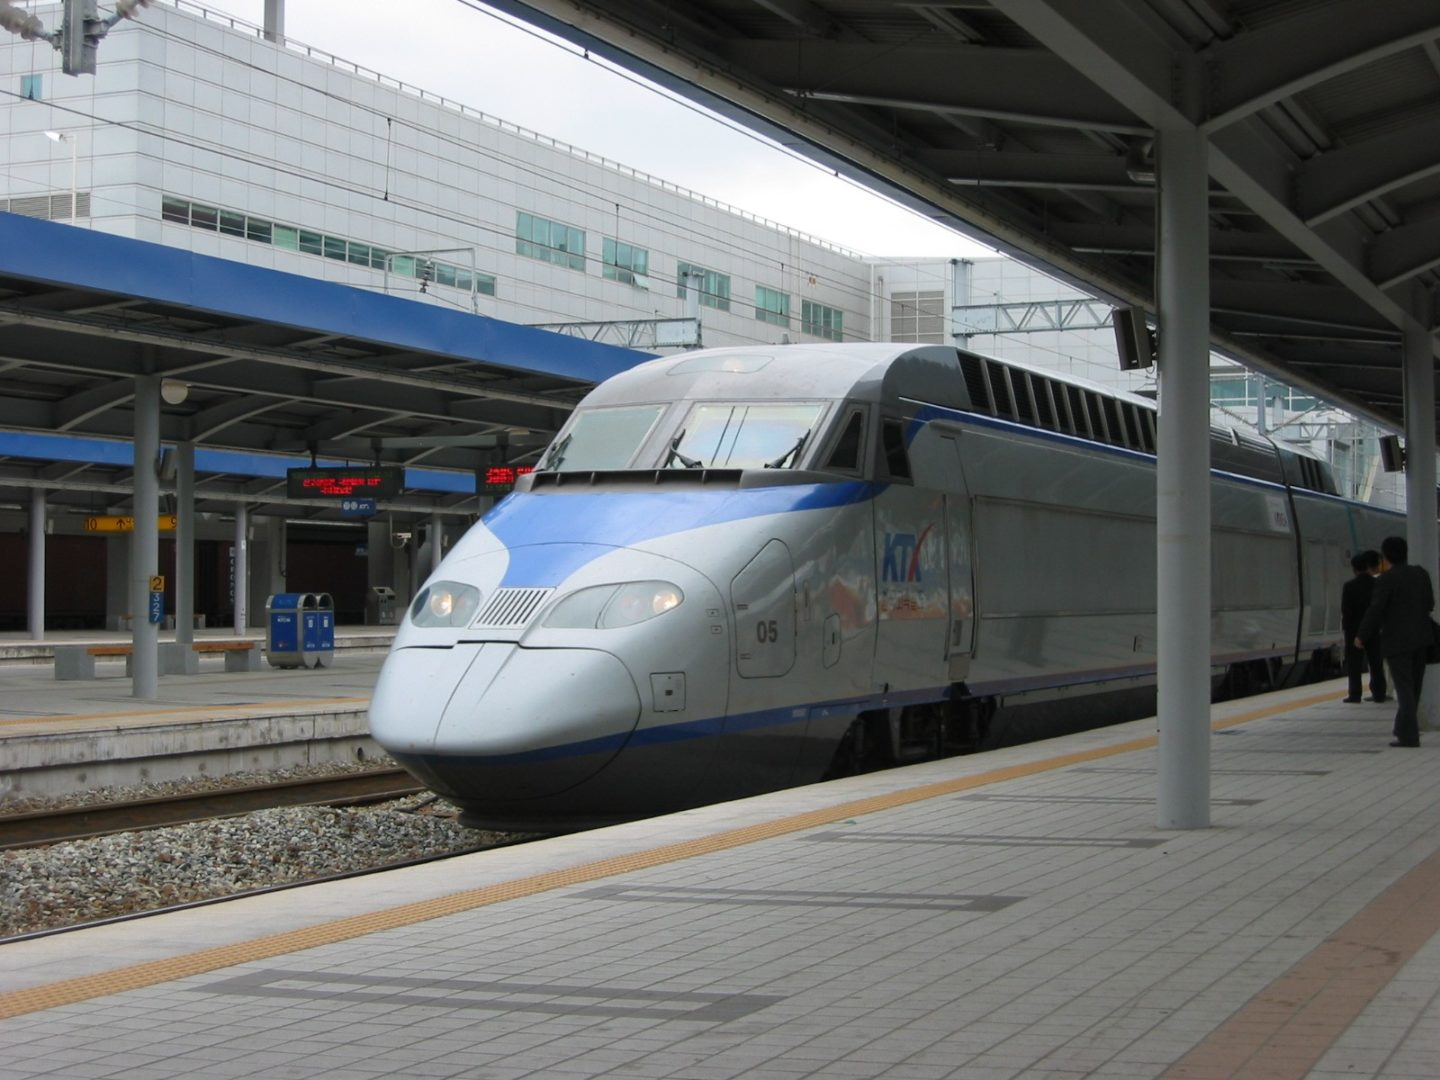 get-on-a-ride-on-the-seoul-–-daegu-high-speed-train-route